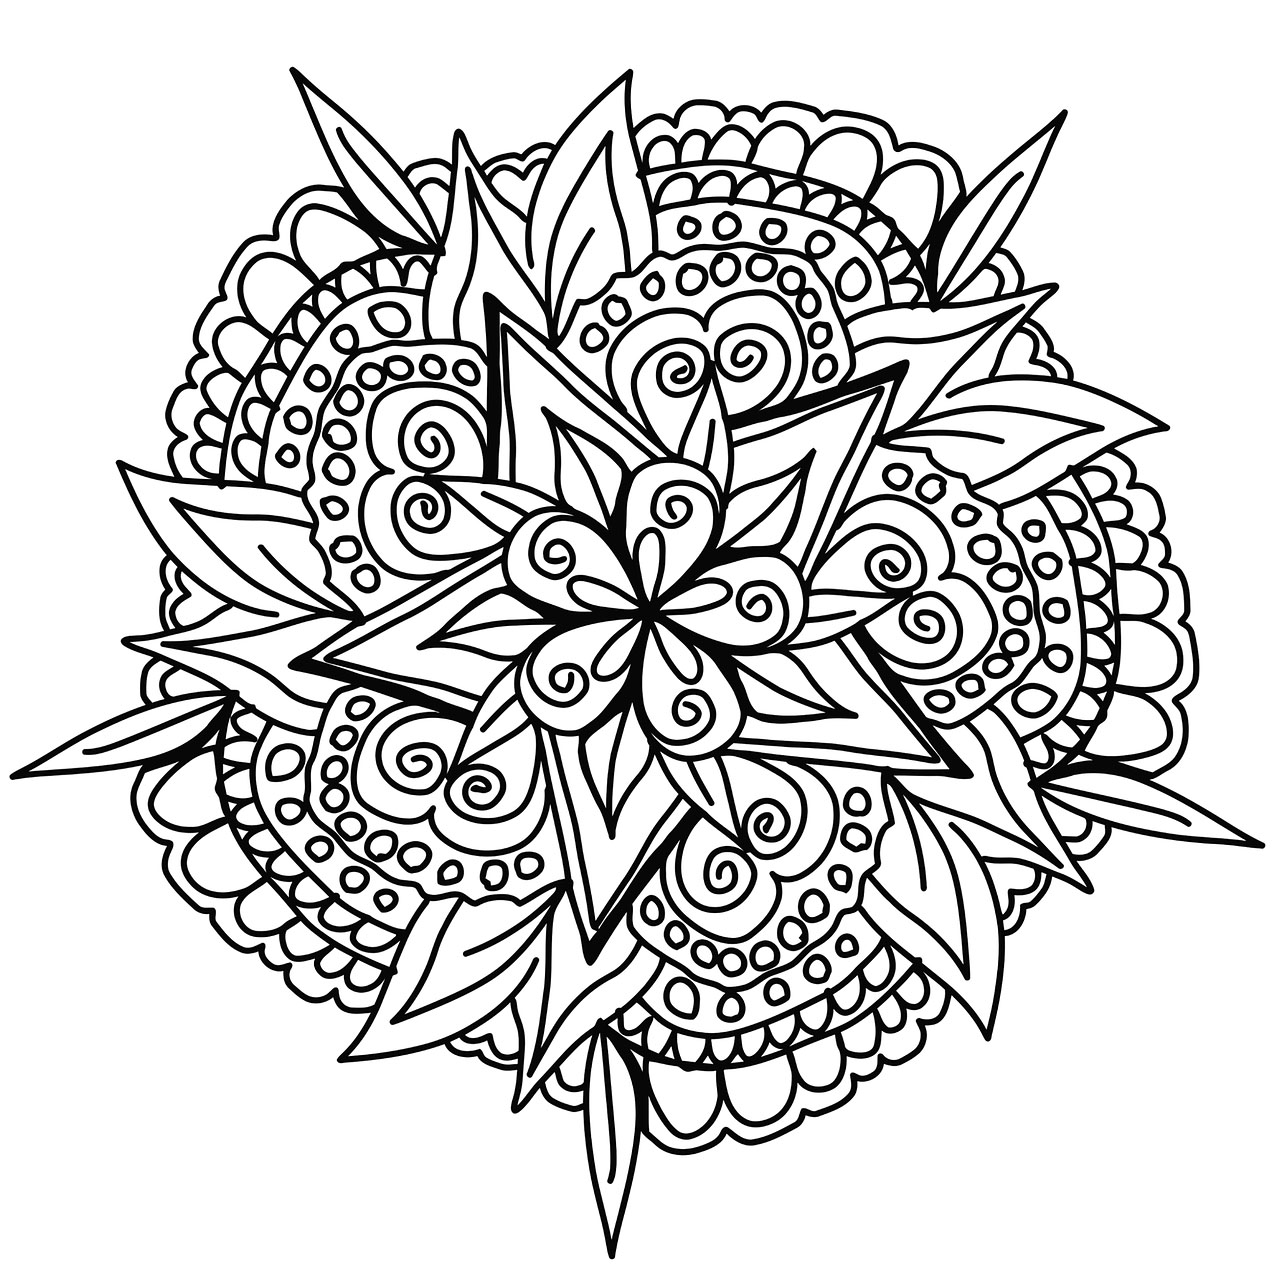 Awesome hand drawn Mandala - Mandalas Adult Coloring Pages